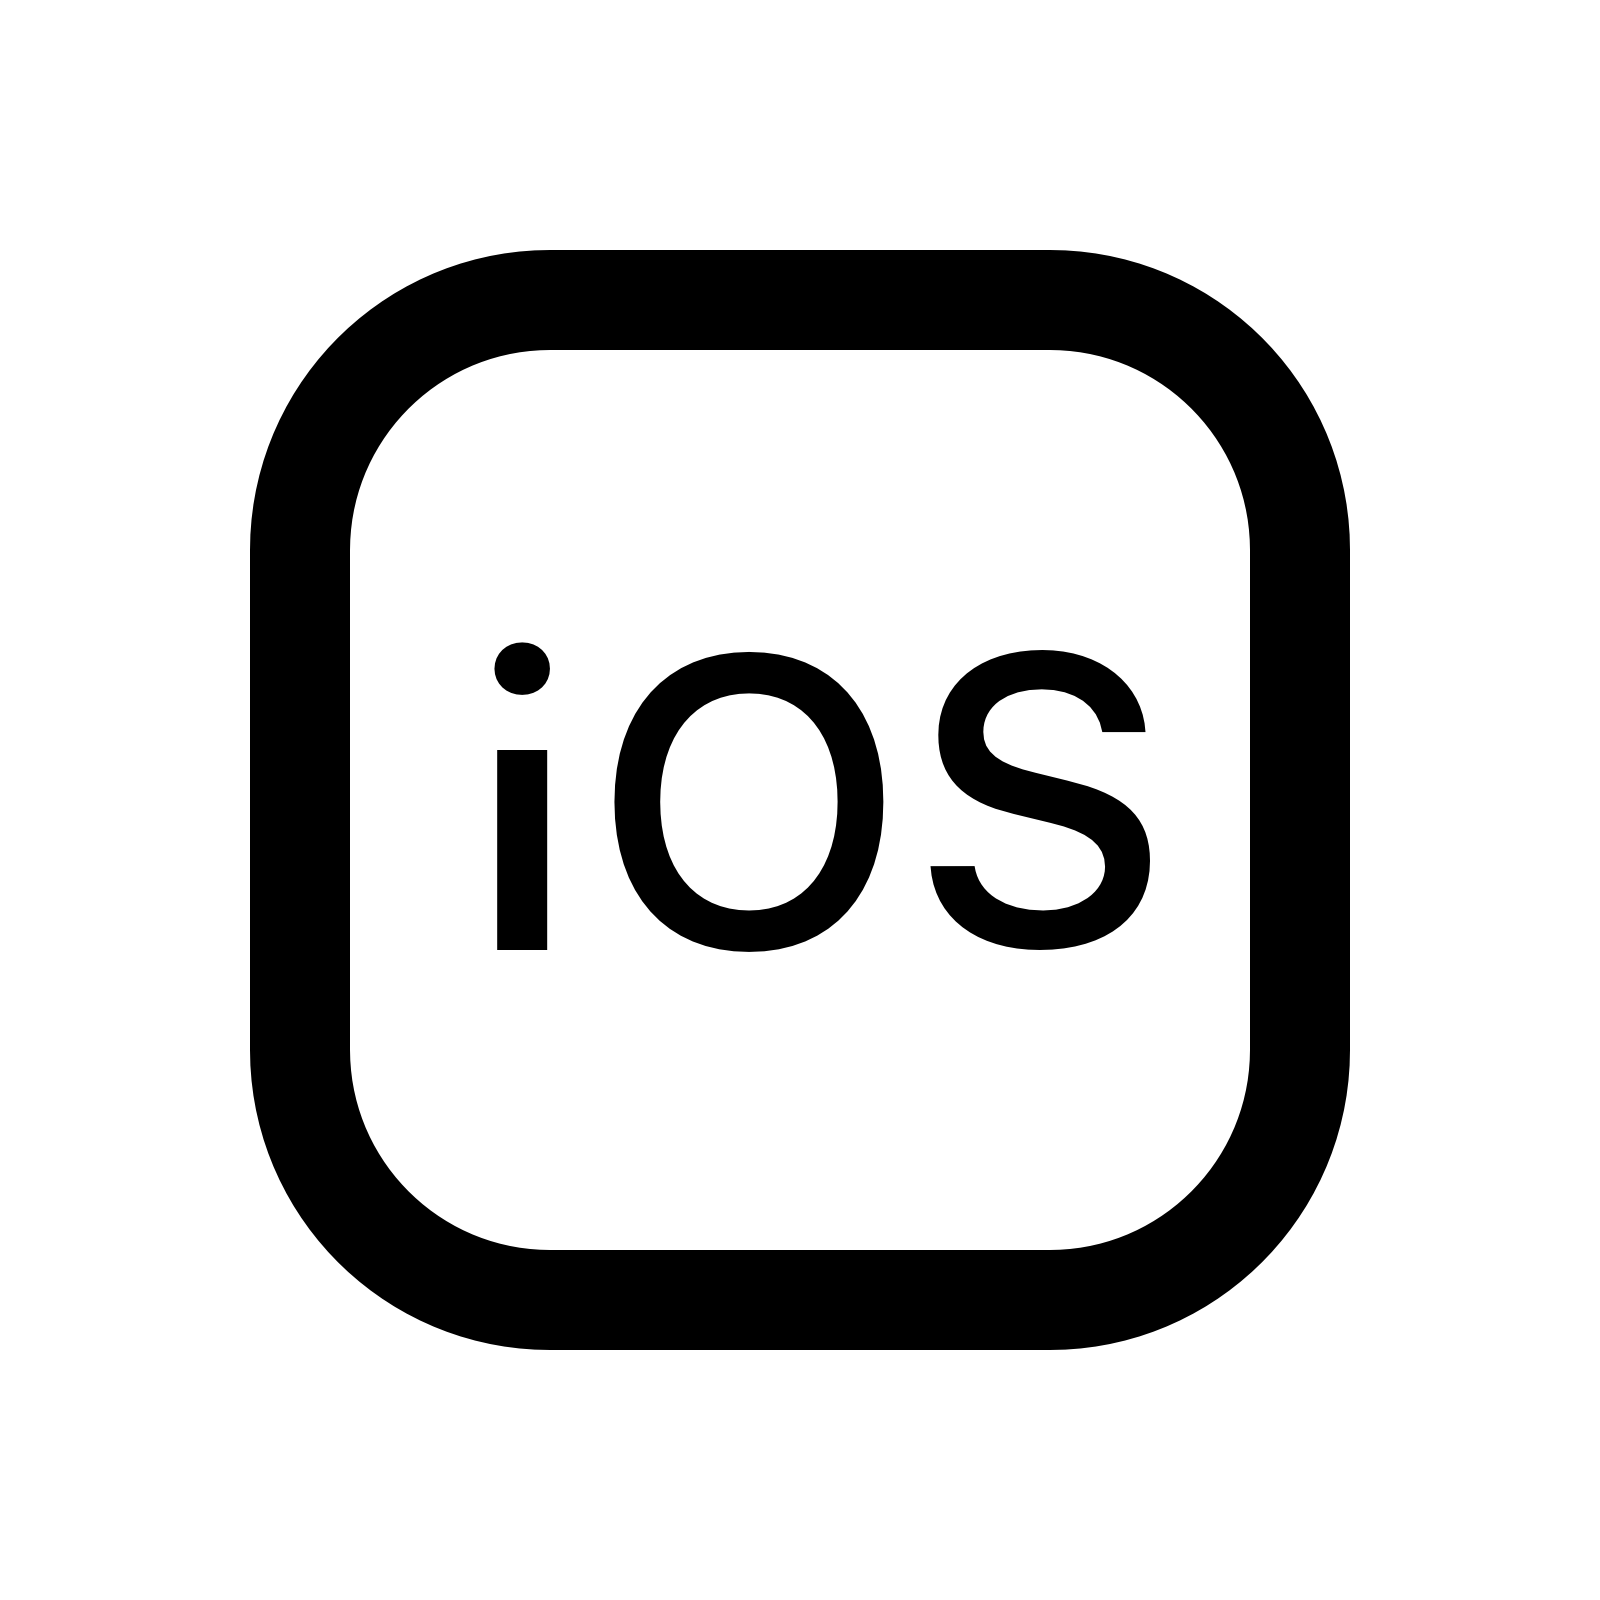 IOS Logo Icon - Ios Logo Vector PNG